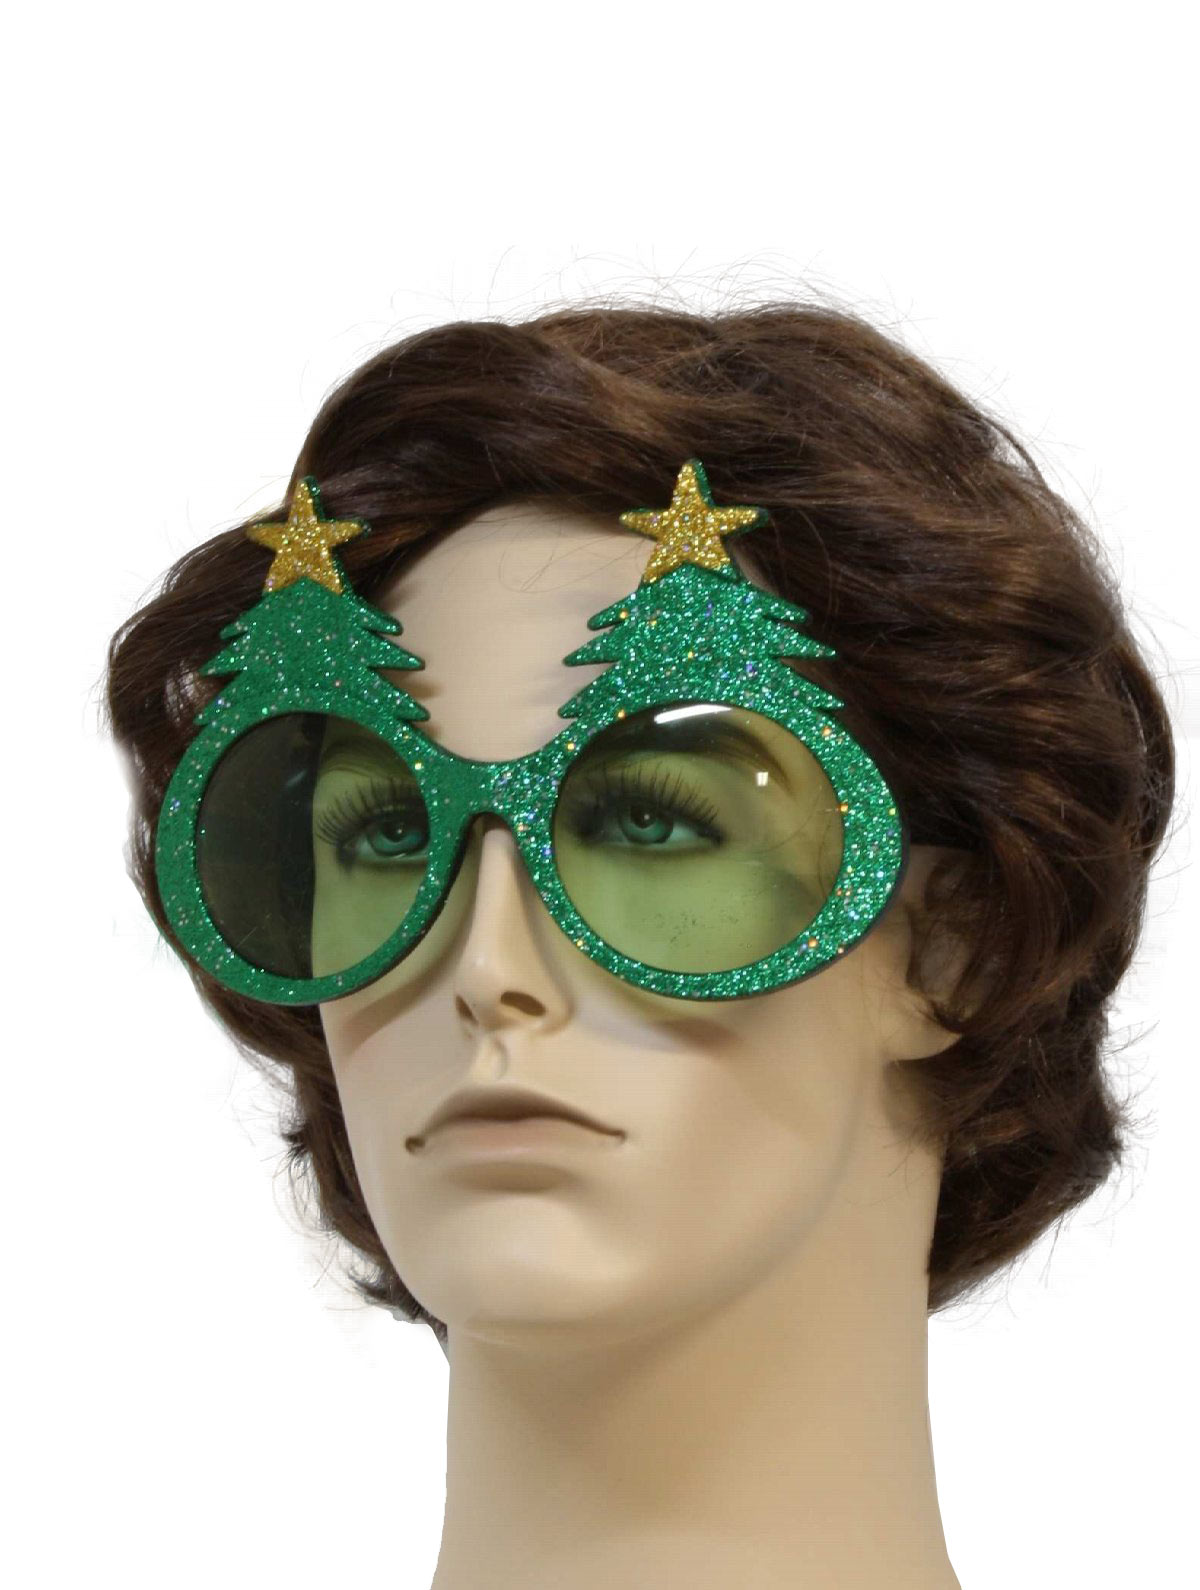 77c8b1d0b9 Accessories - Christmas Tree Sunglasses to wear with your Ugly Christmas  Sweater  -Crazy .